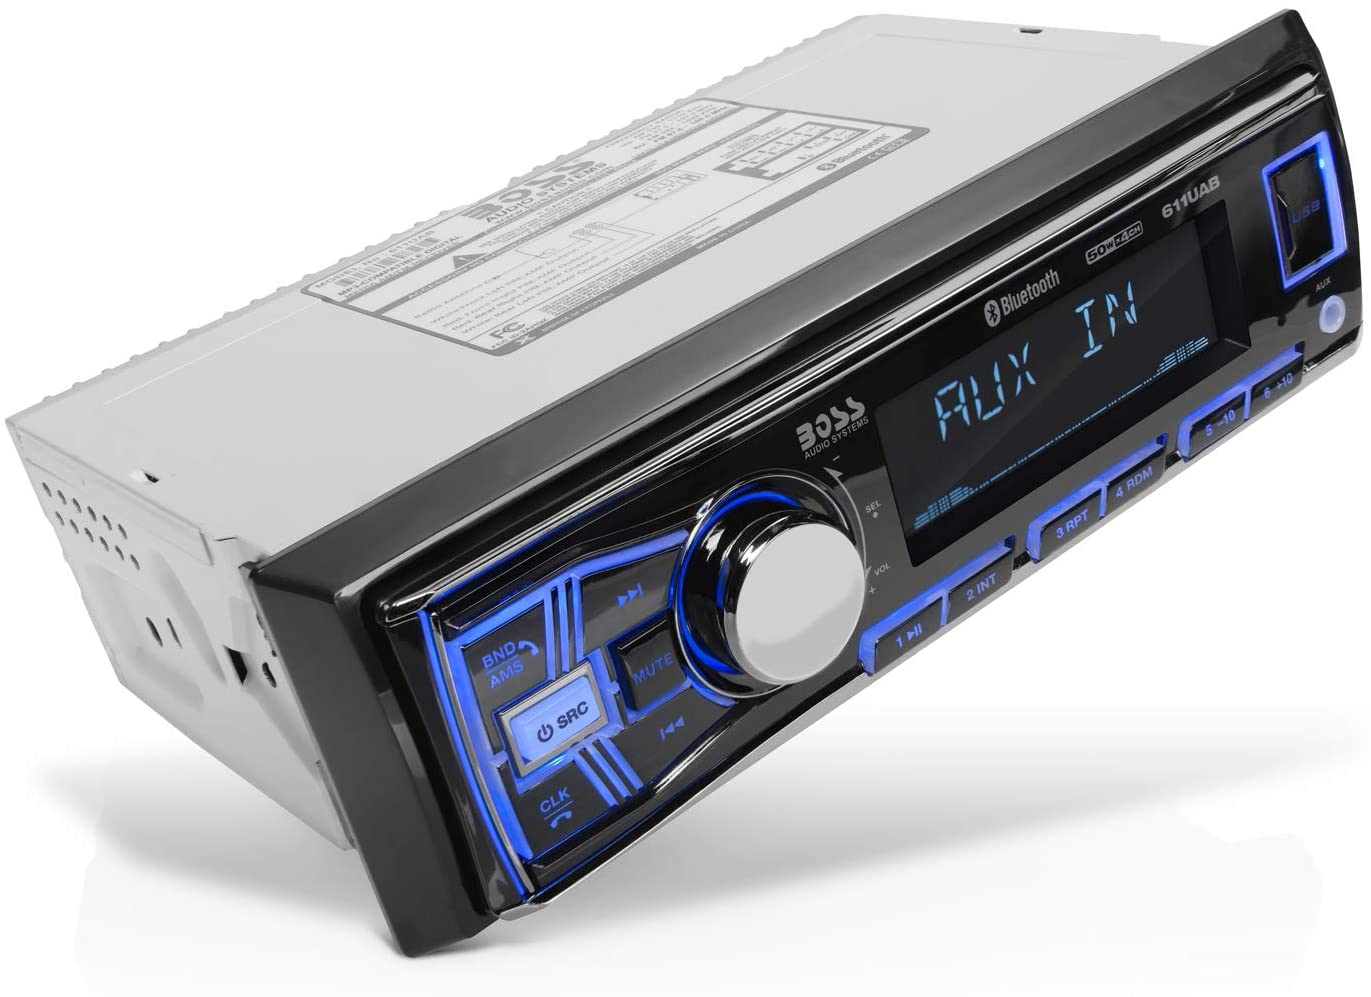 Amazon.com: BOSS Audio Systems 611UAB Multimedia Car Stereo - Single Din,  Bluetooth Audio and Hands-Free Calling, Built-in Microphone, MP3 Player, No  CD/DVD Player, USB Port, AUX Input, AM/FM Radio Receiver: Car ElectronicsAmazon.com